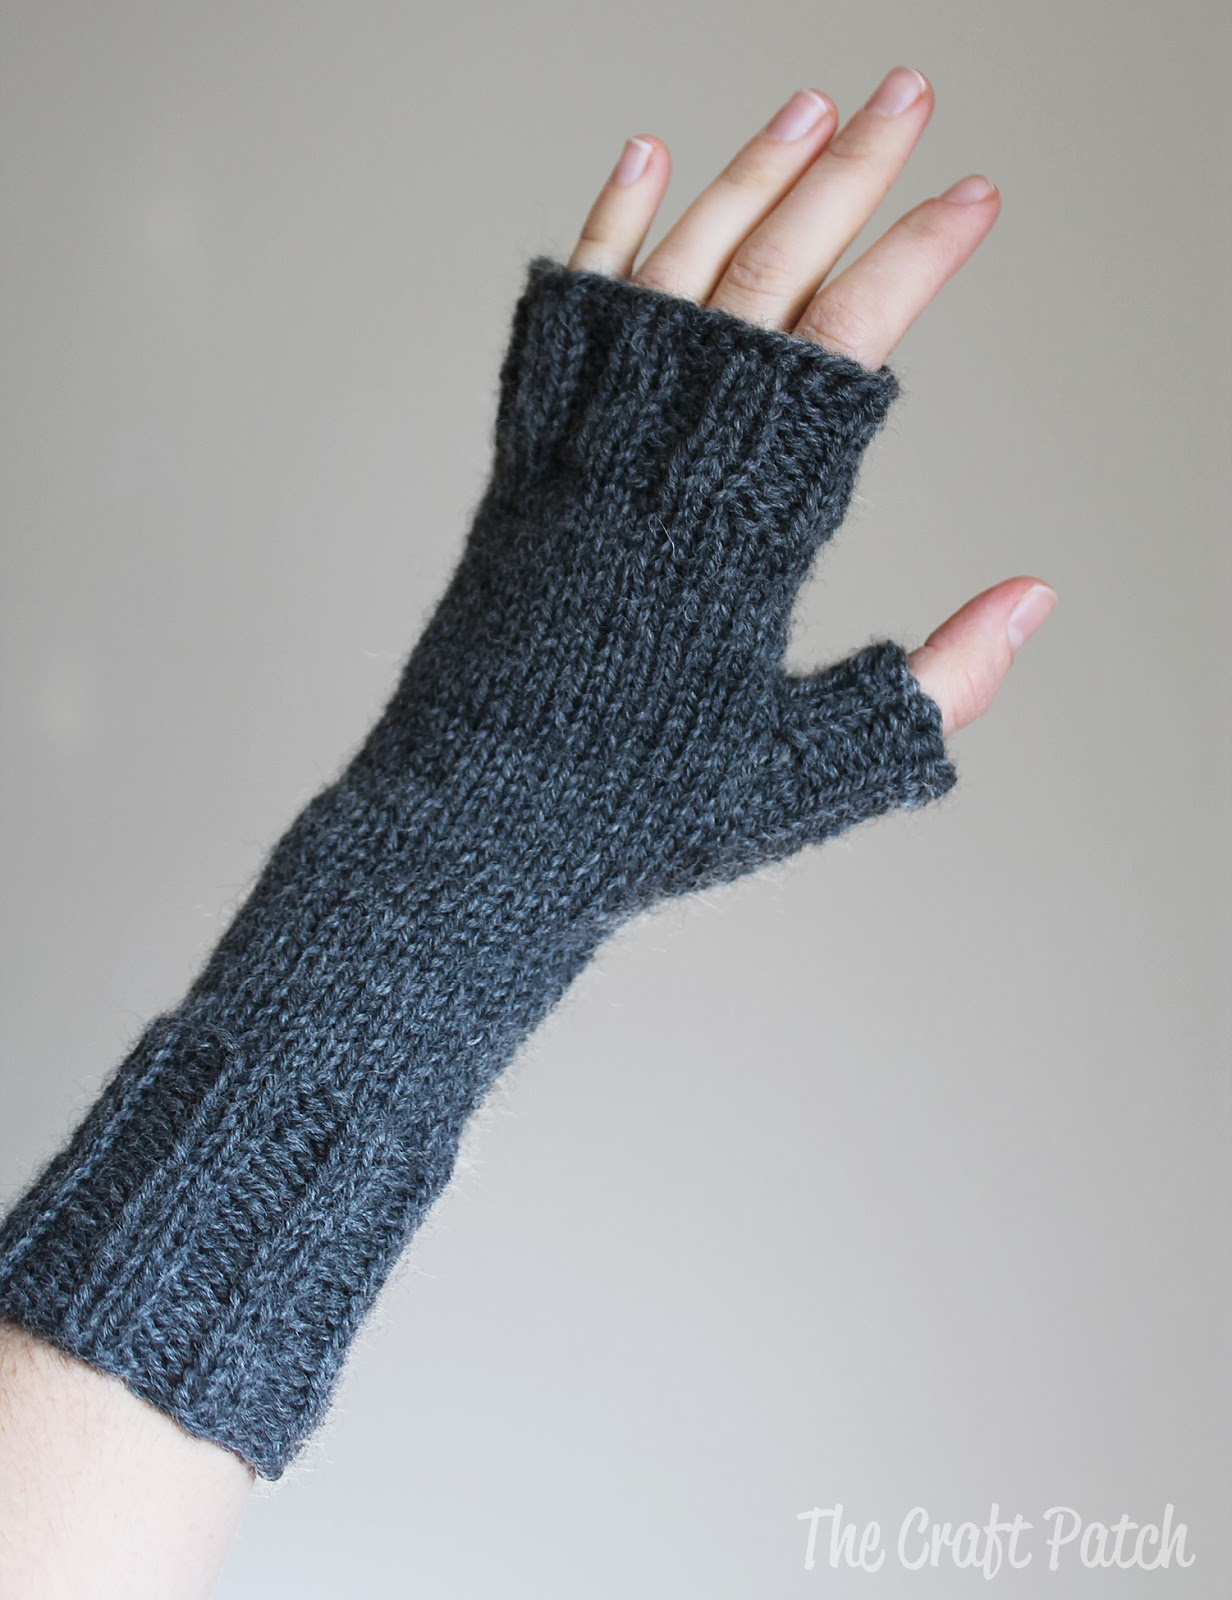 The Craft Patch: Knitted Fingerless Gloves